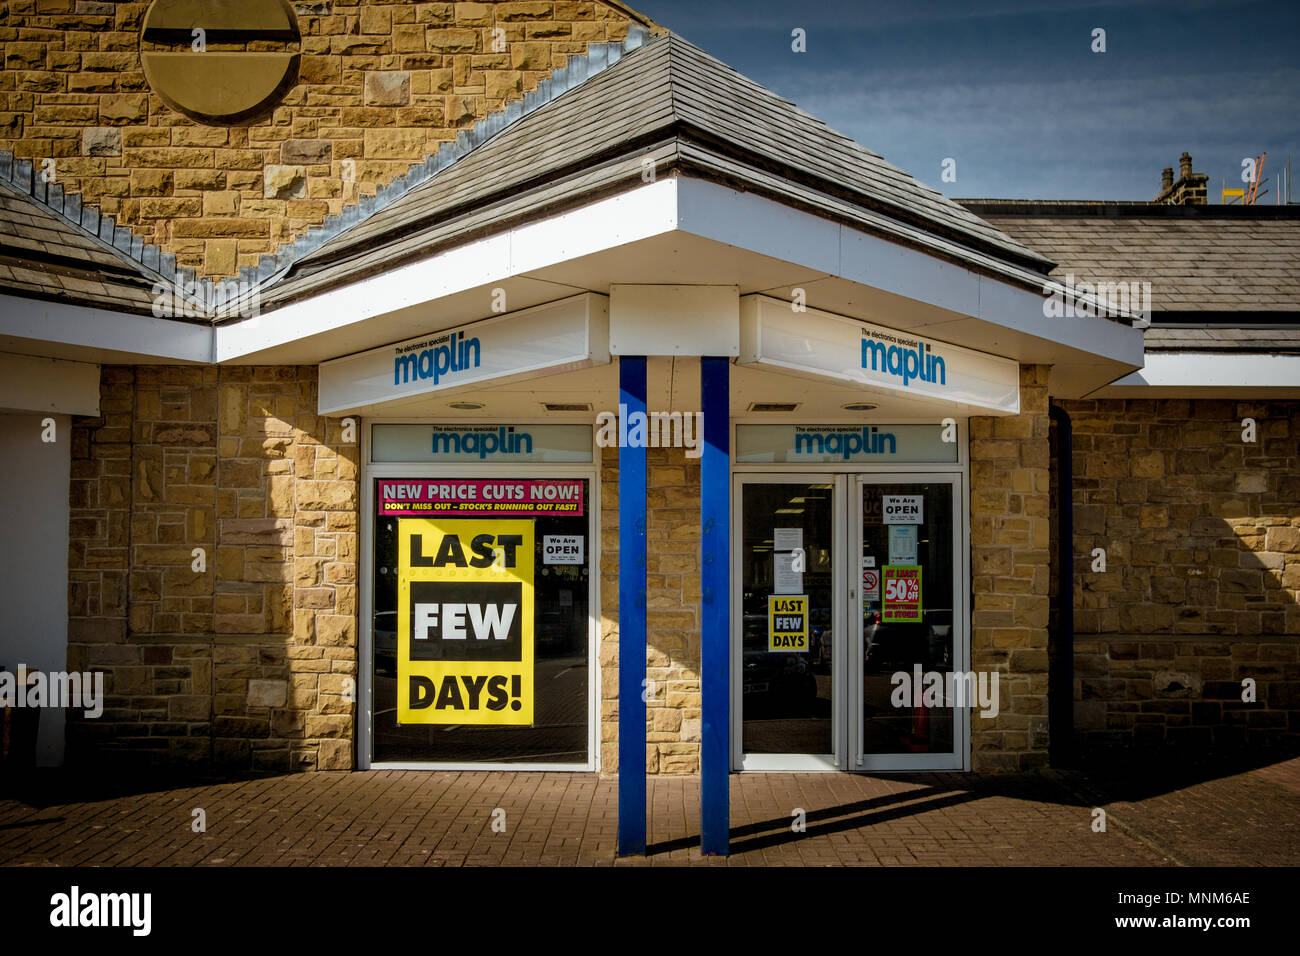 Maplin Electronic Superstore is closing down due to poor sales and competition from online companies. This is the Harrogate branch, North Yorkshire - Stock Image